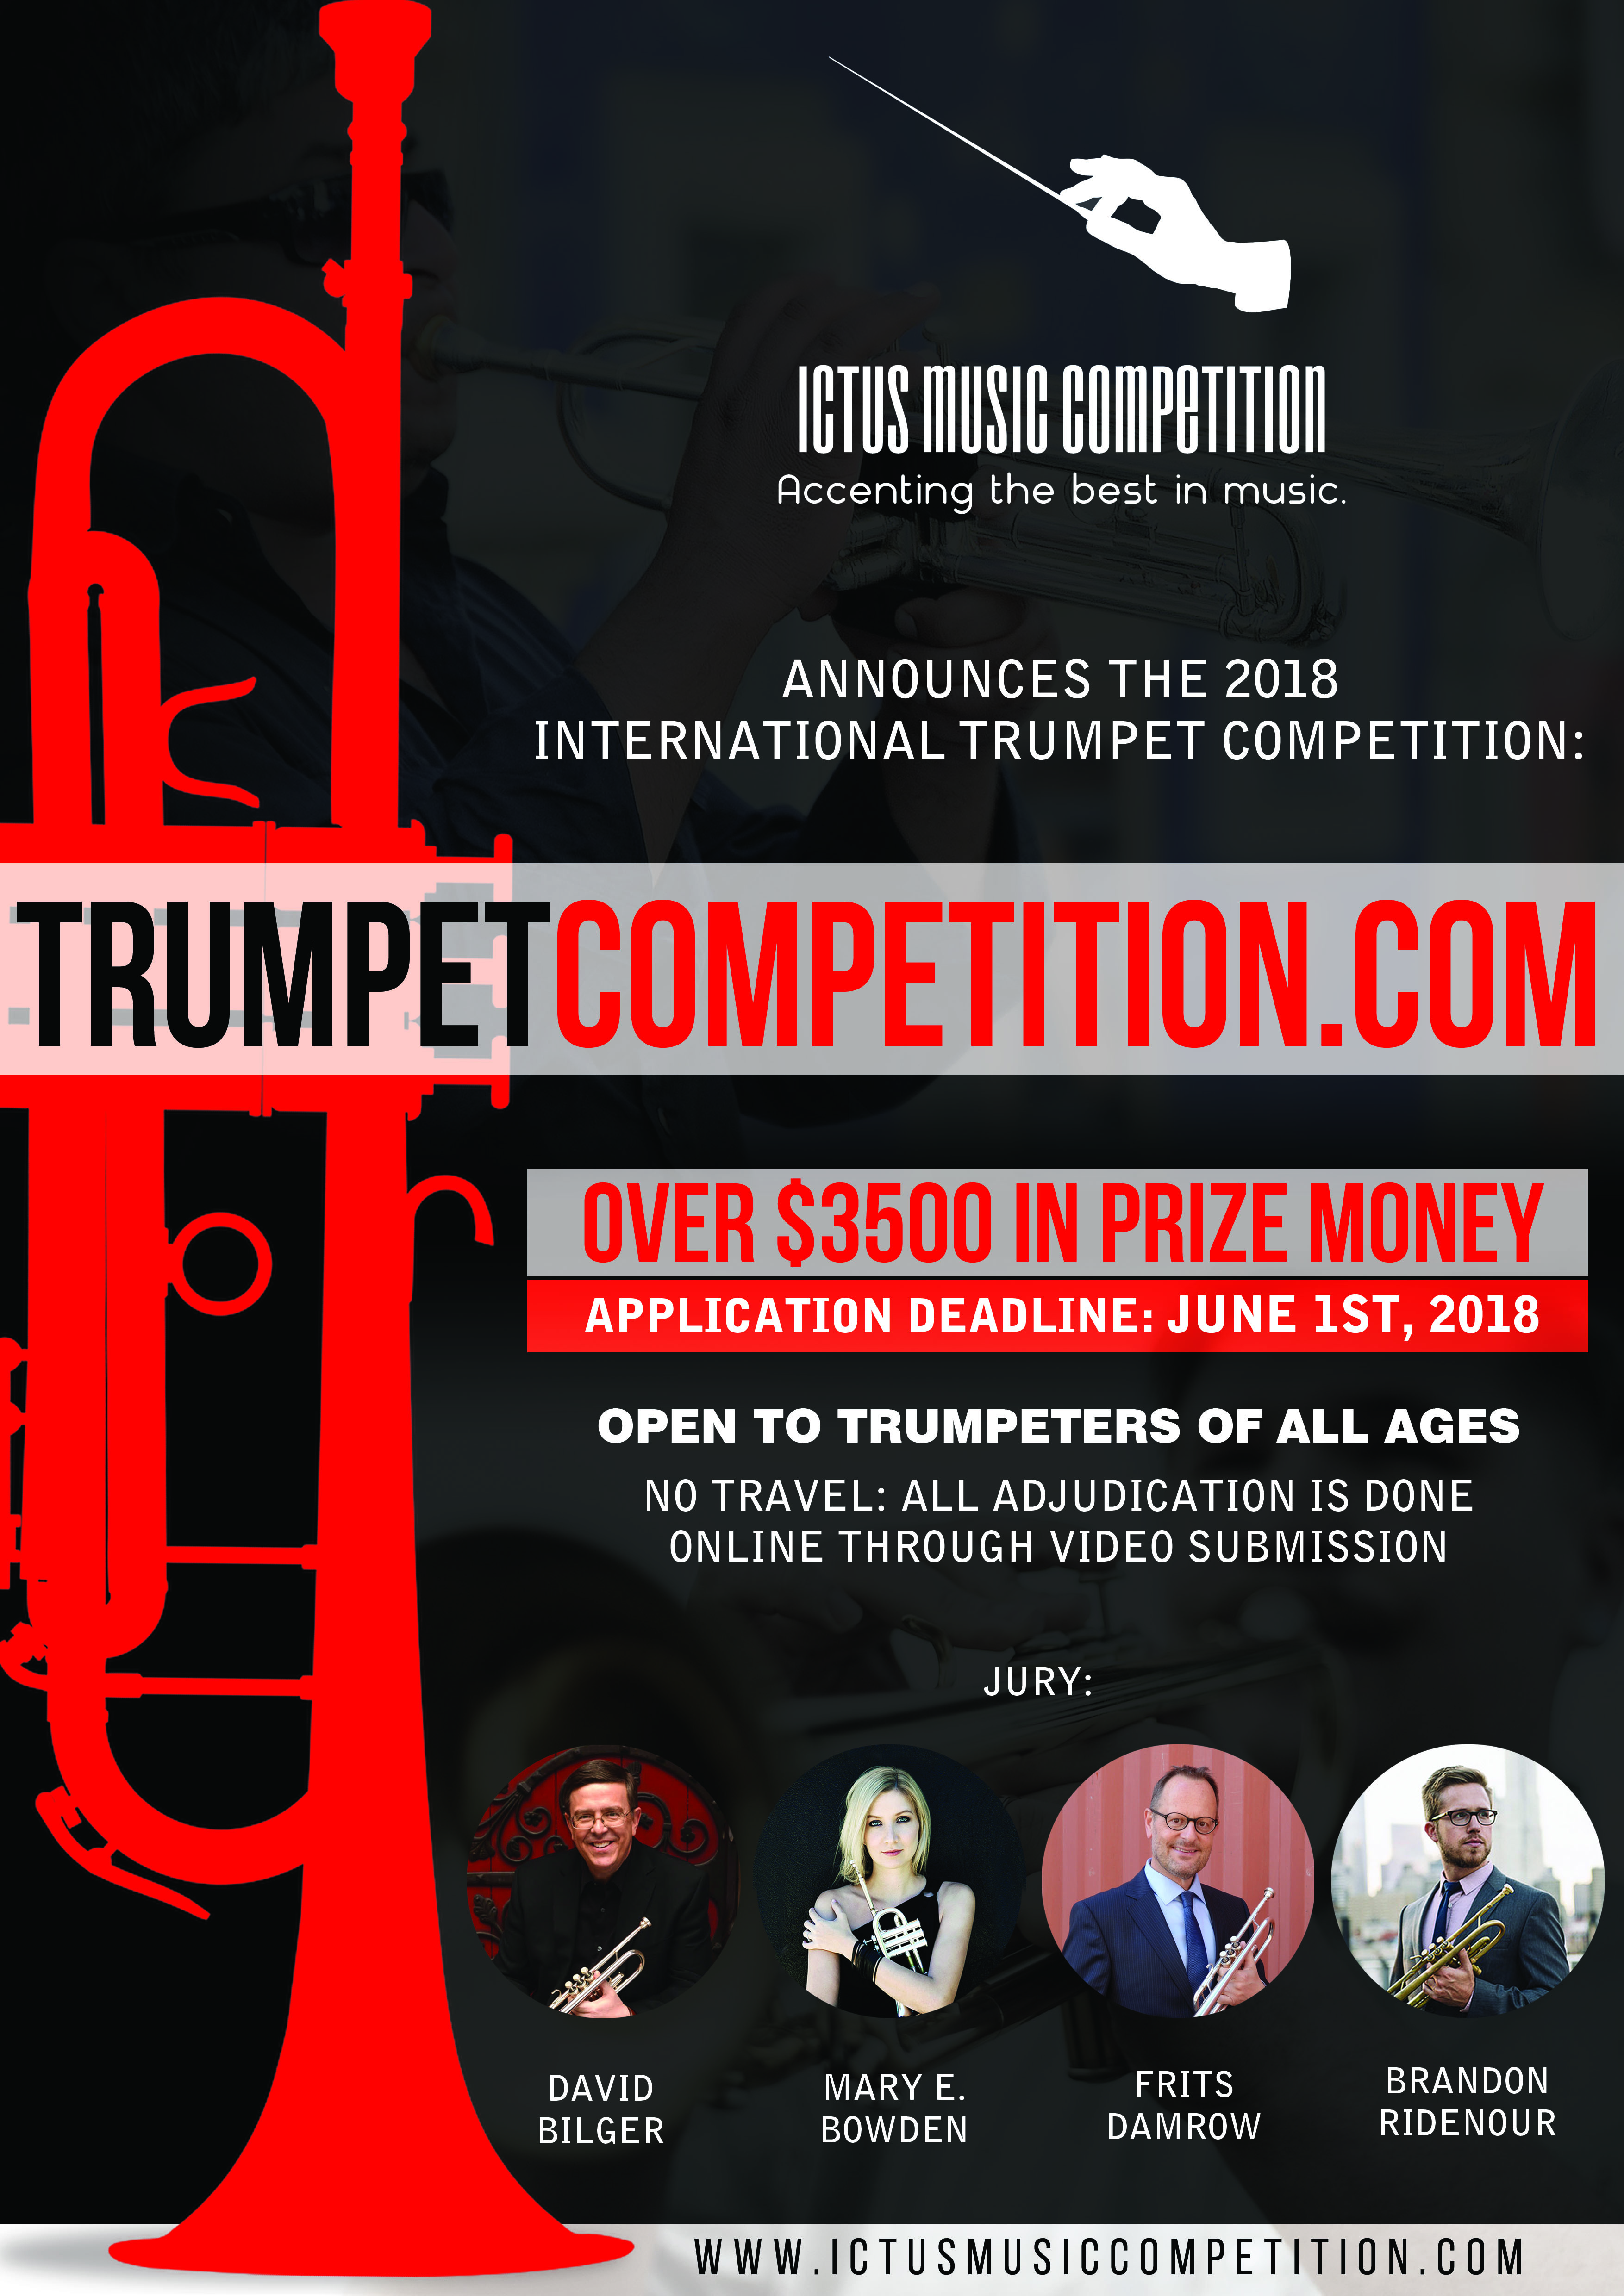 Ictus International Music Competition Announces Its First Online Trumpet Competition